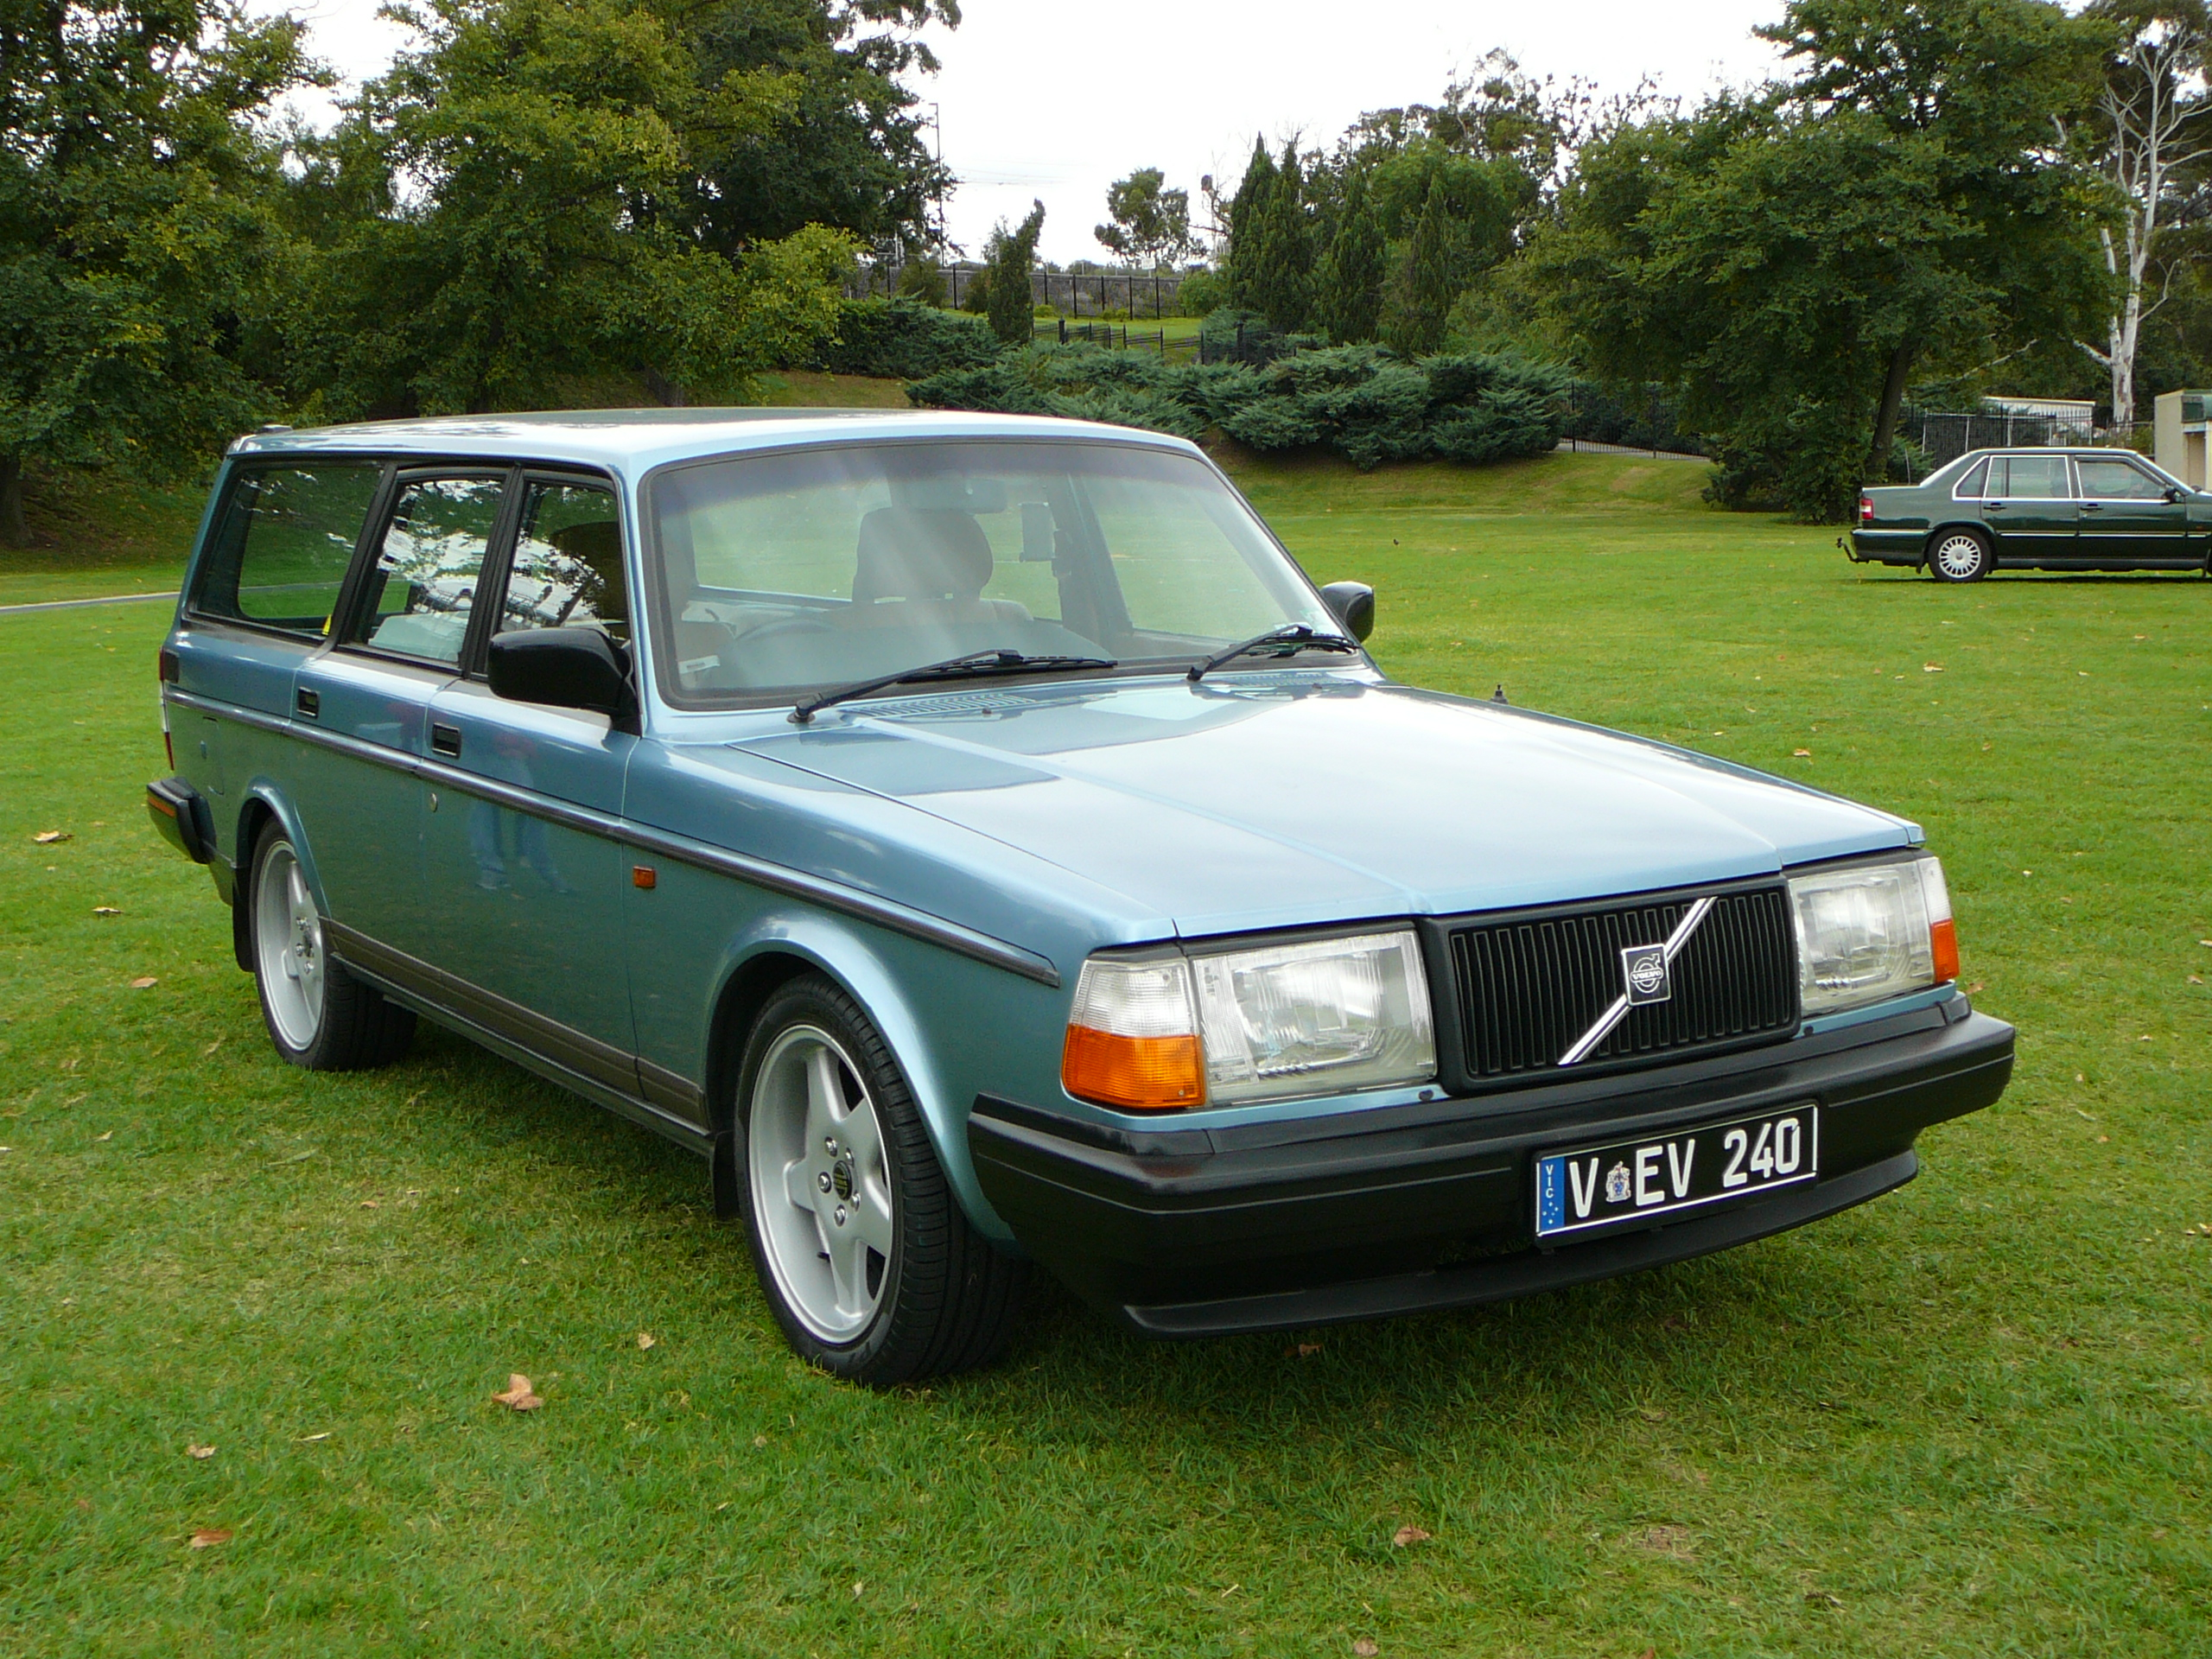 Electric Volvo 240 Greg Sievert Club Of Victoria Wiring Schematic Dc Car Conversion Ev Electrical Diagrams